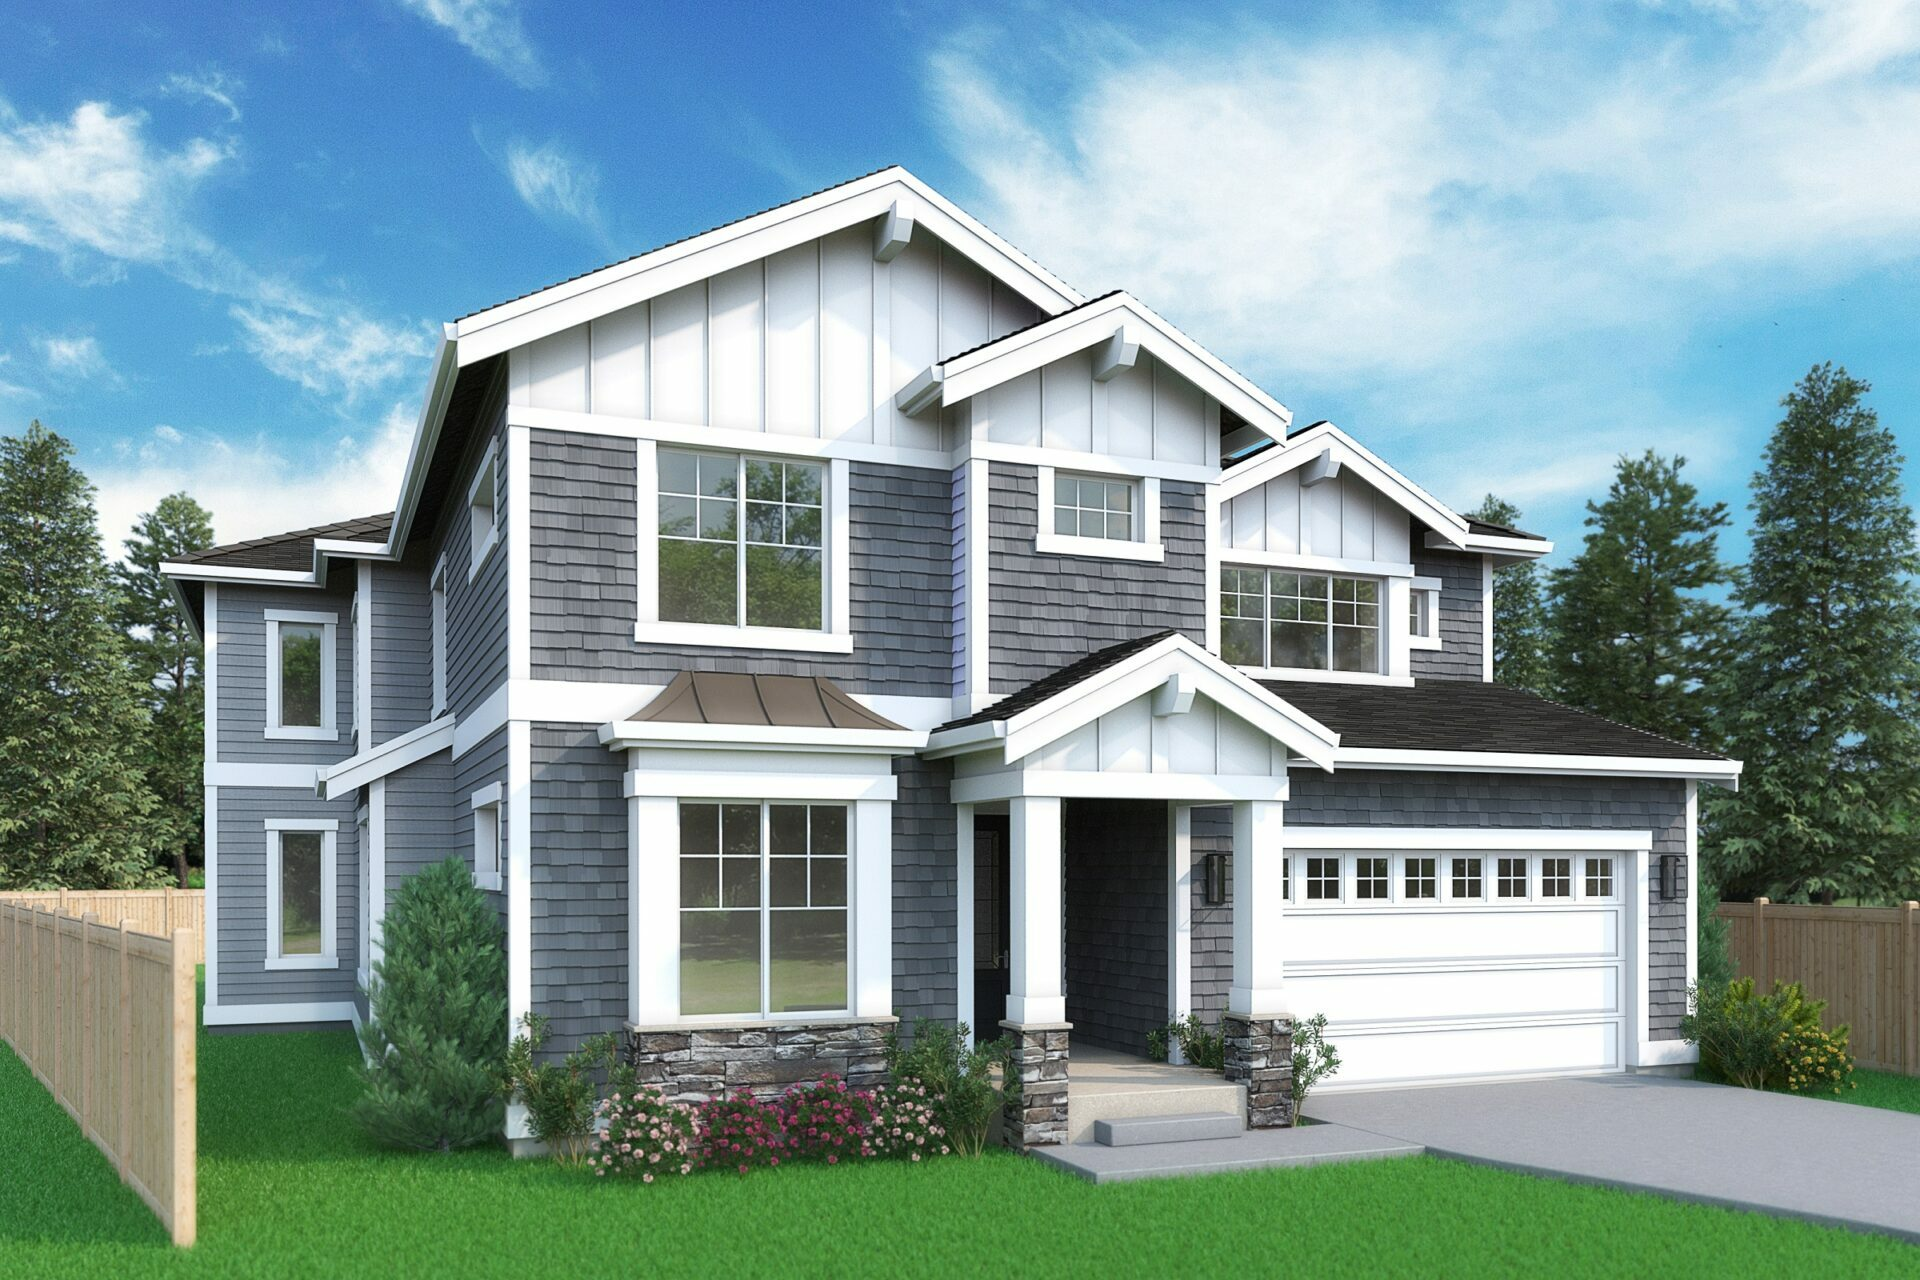 View our new luxury home construction on 902 168th Ave NE, in Bellevue, WA from MN Custom Homes